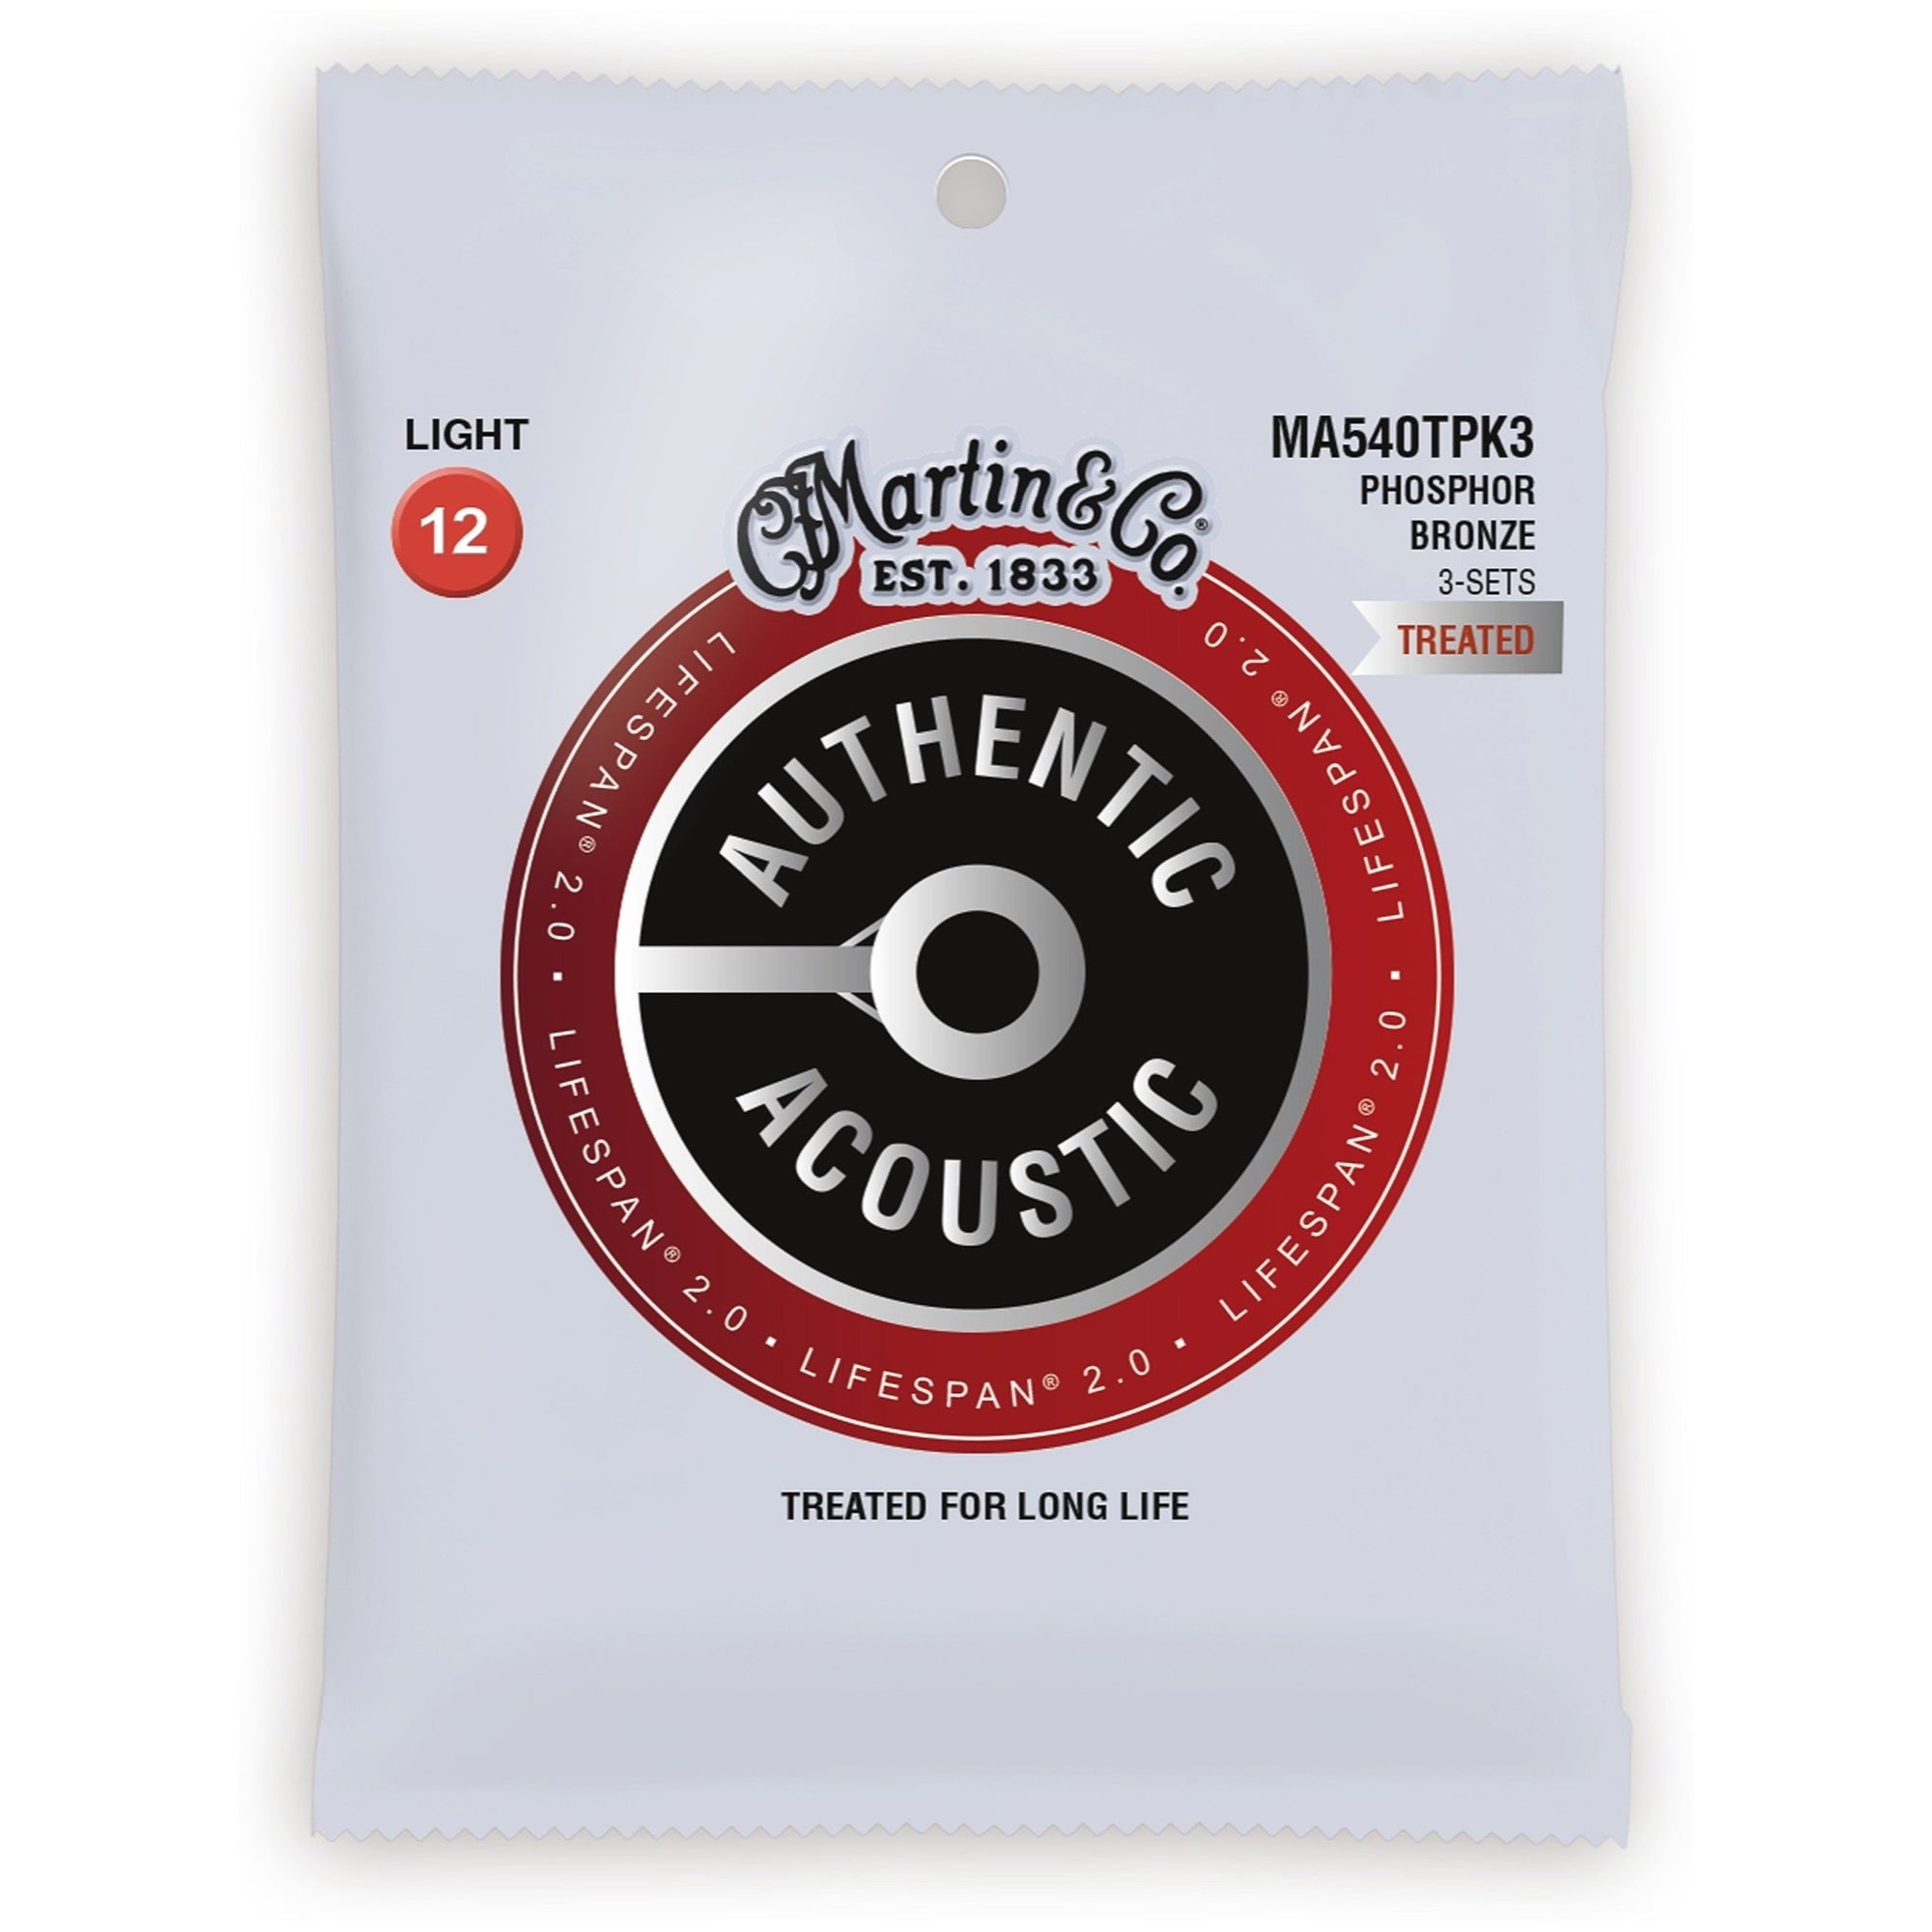 Martin Authentic Lifespan 2.0 Treated Phosphor Bronze Acoustic Guitar Strings, MA540T, 3-Pack, Light